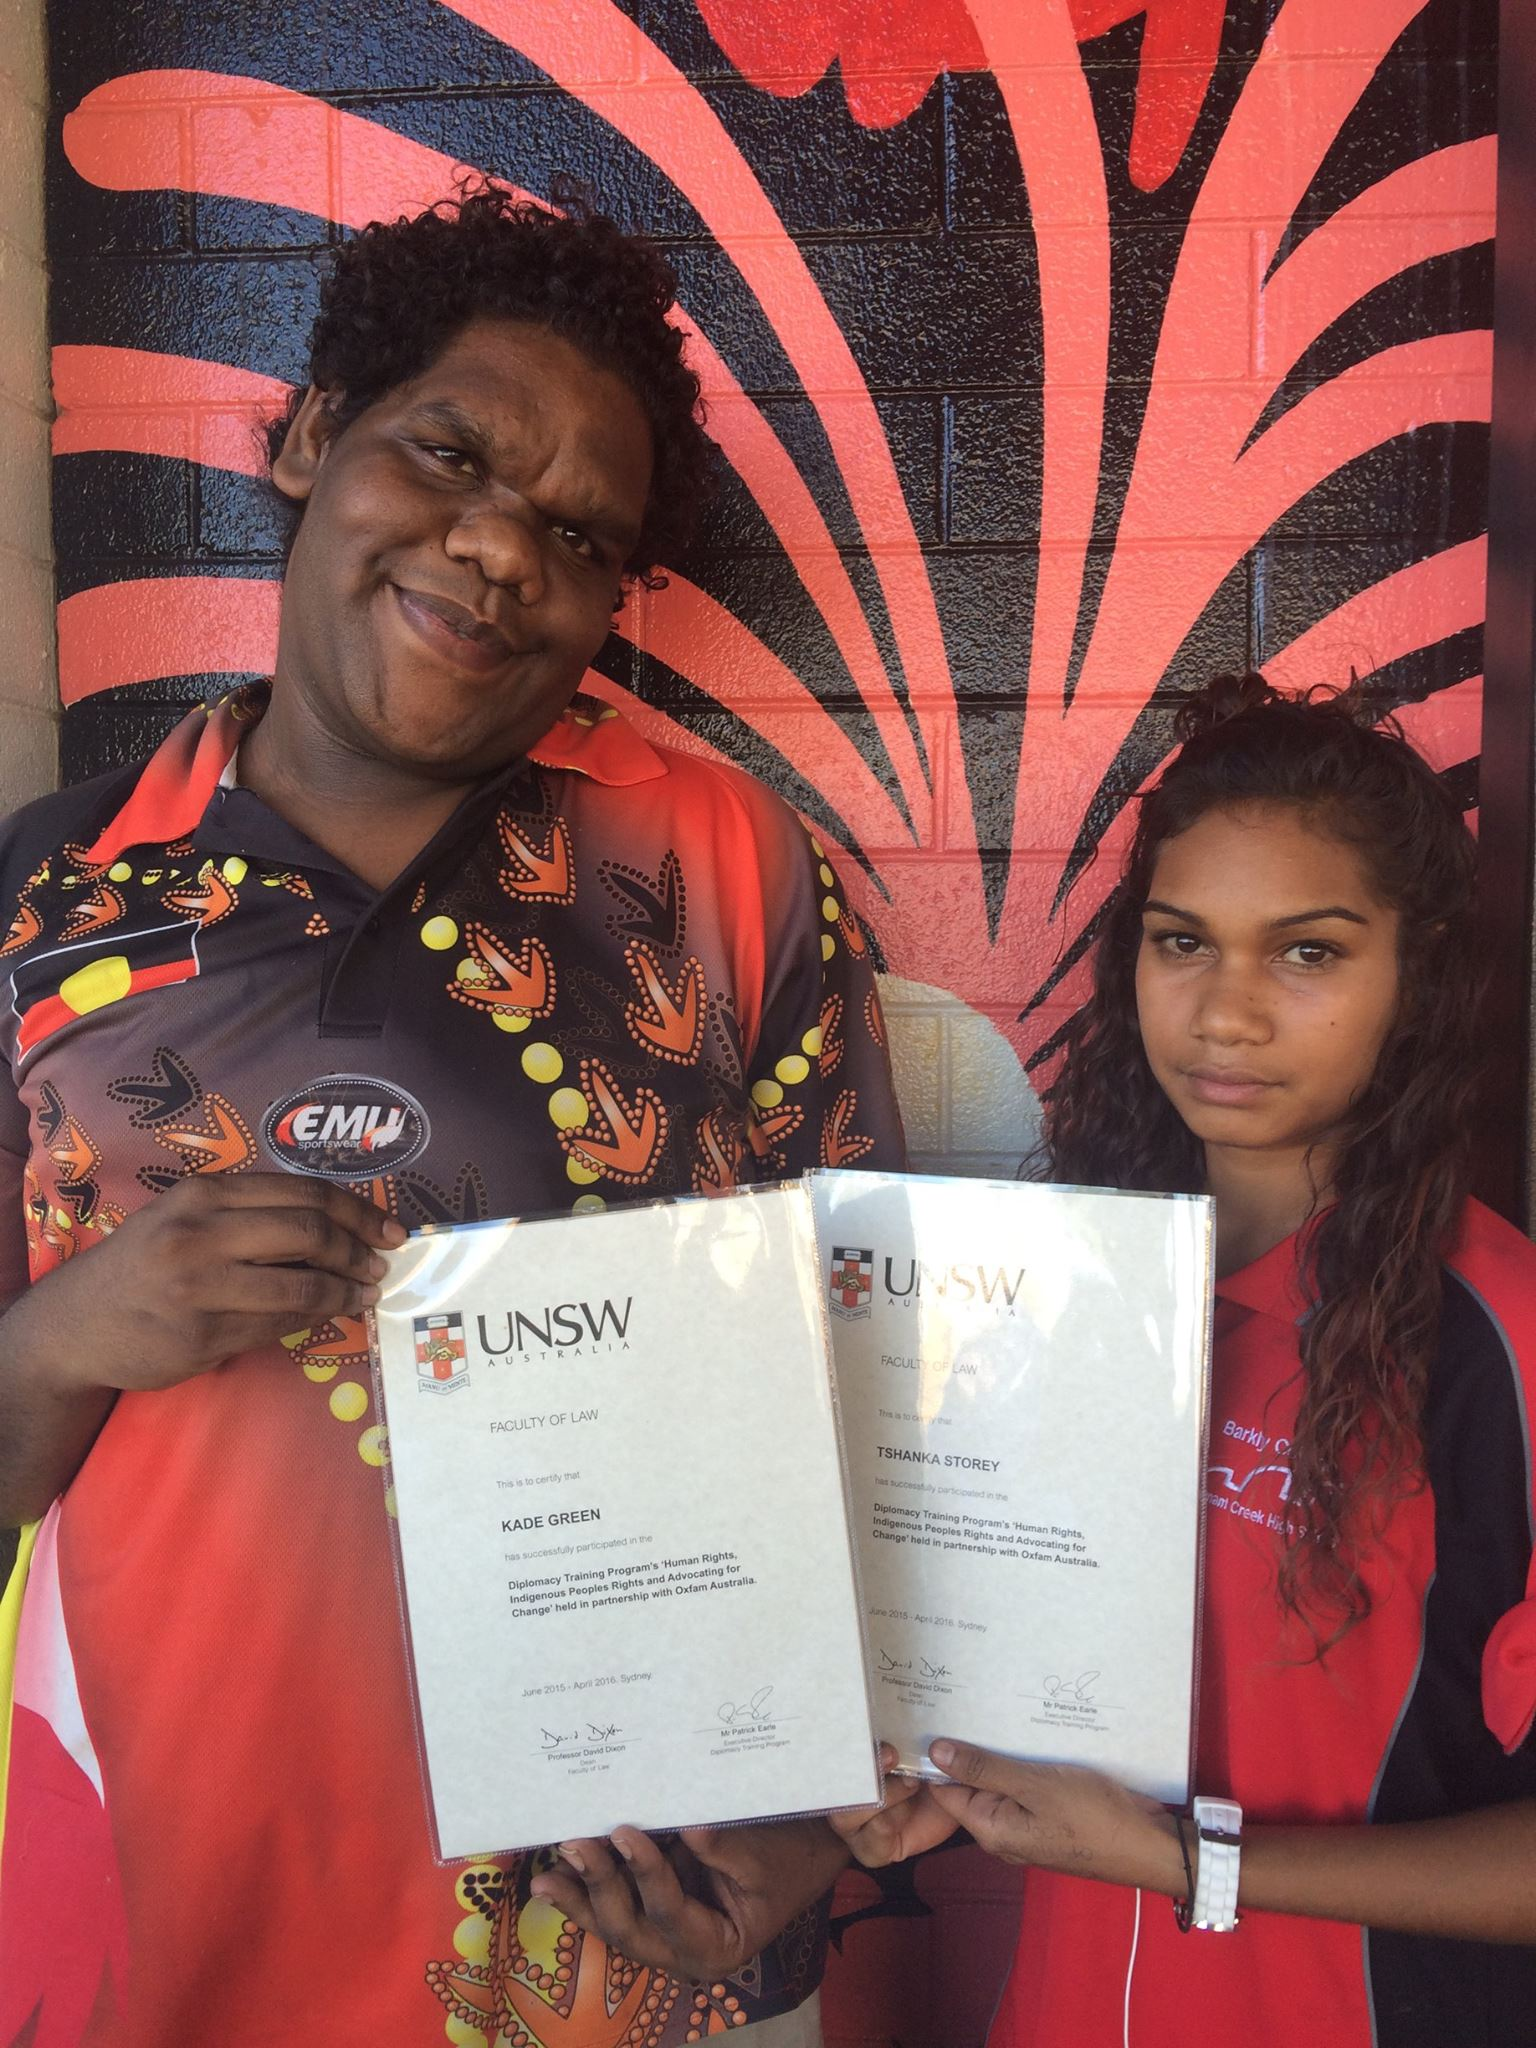 Tshanka Storey and Kaade Green were successful in participating at the Indigenous Human Rights Training organised by UNSW<br>